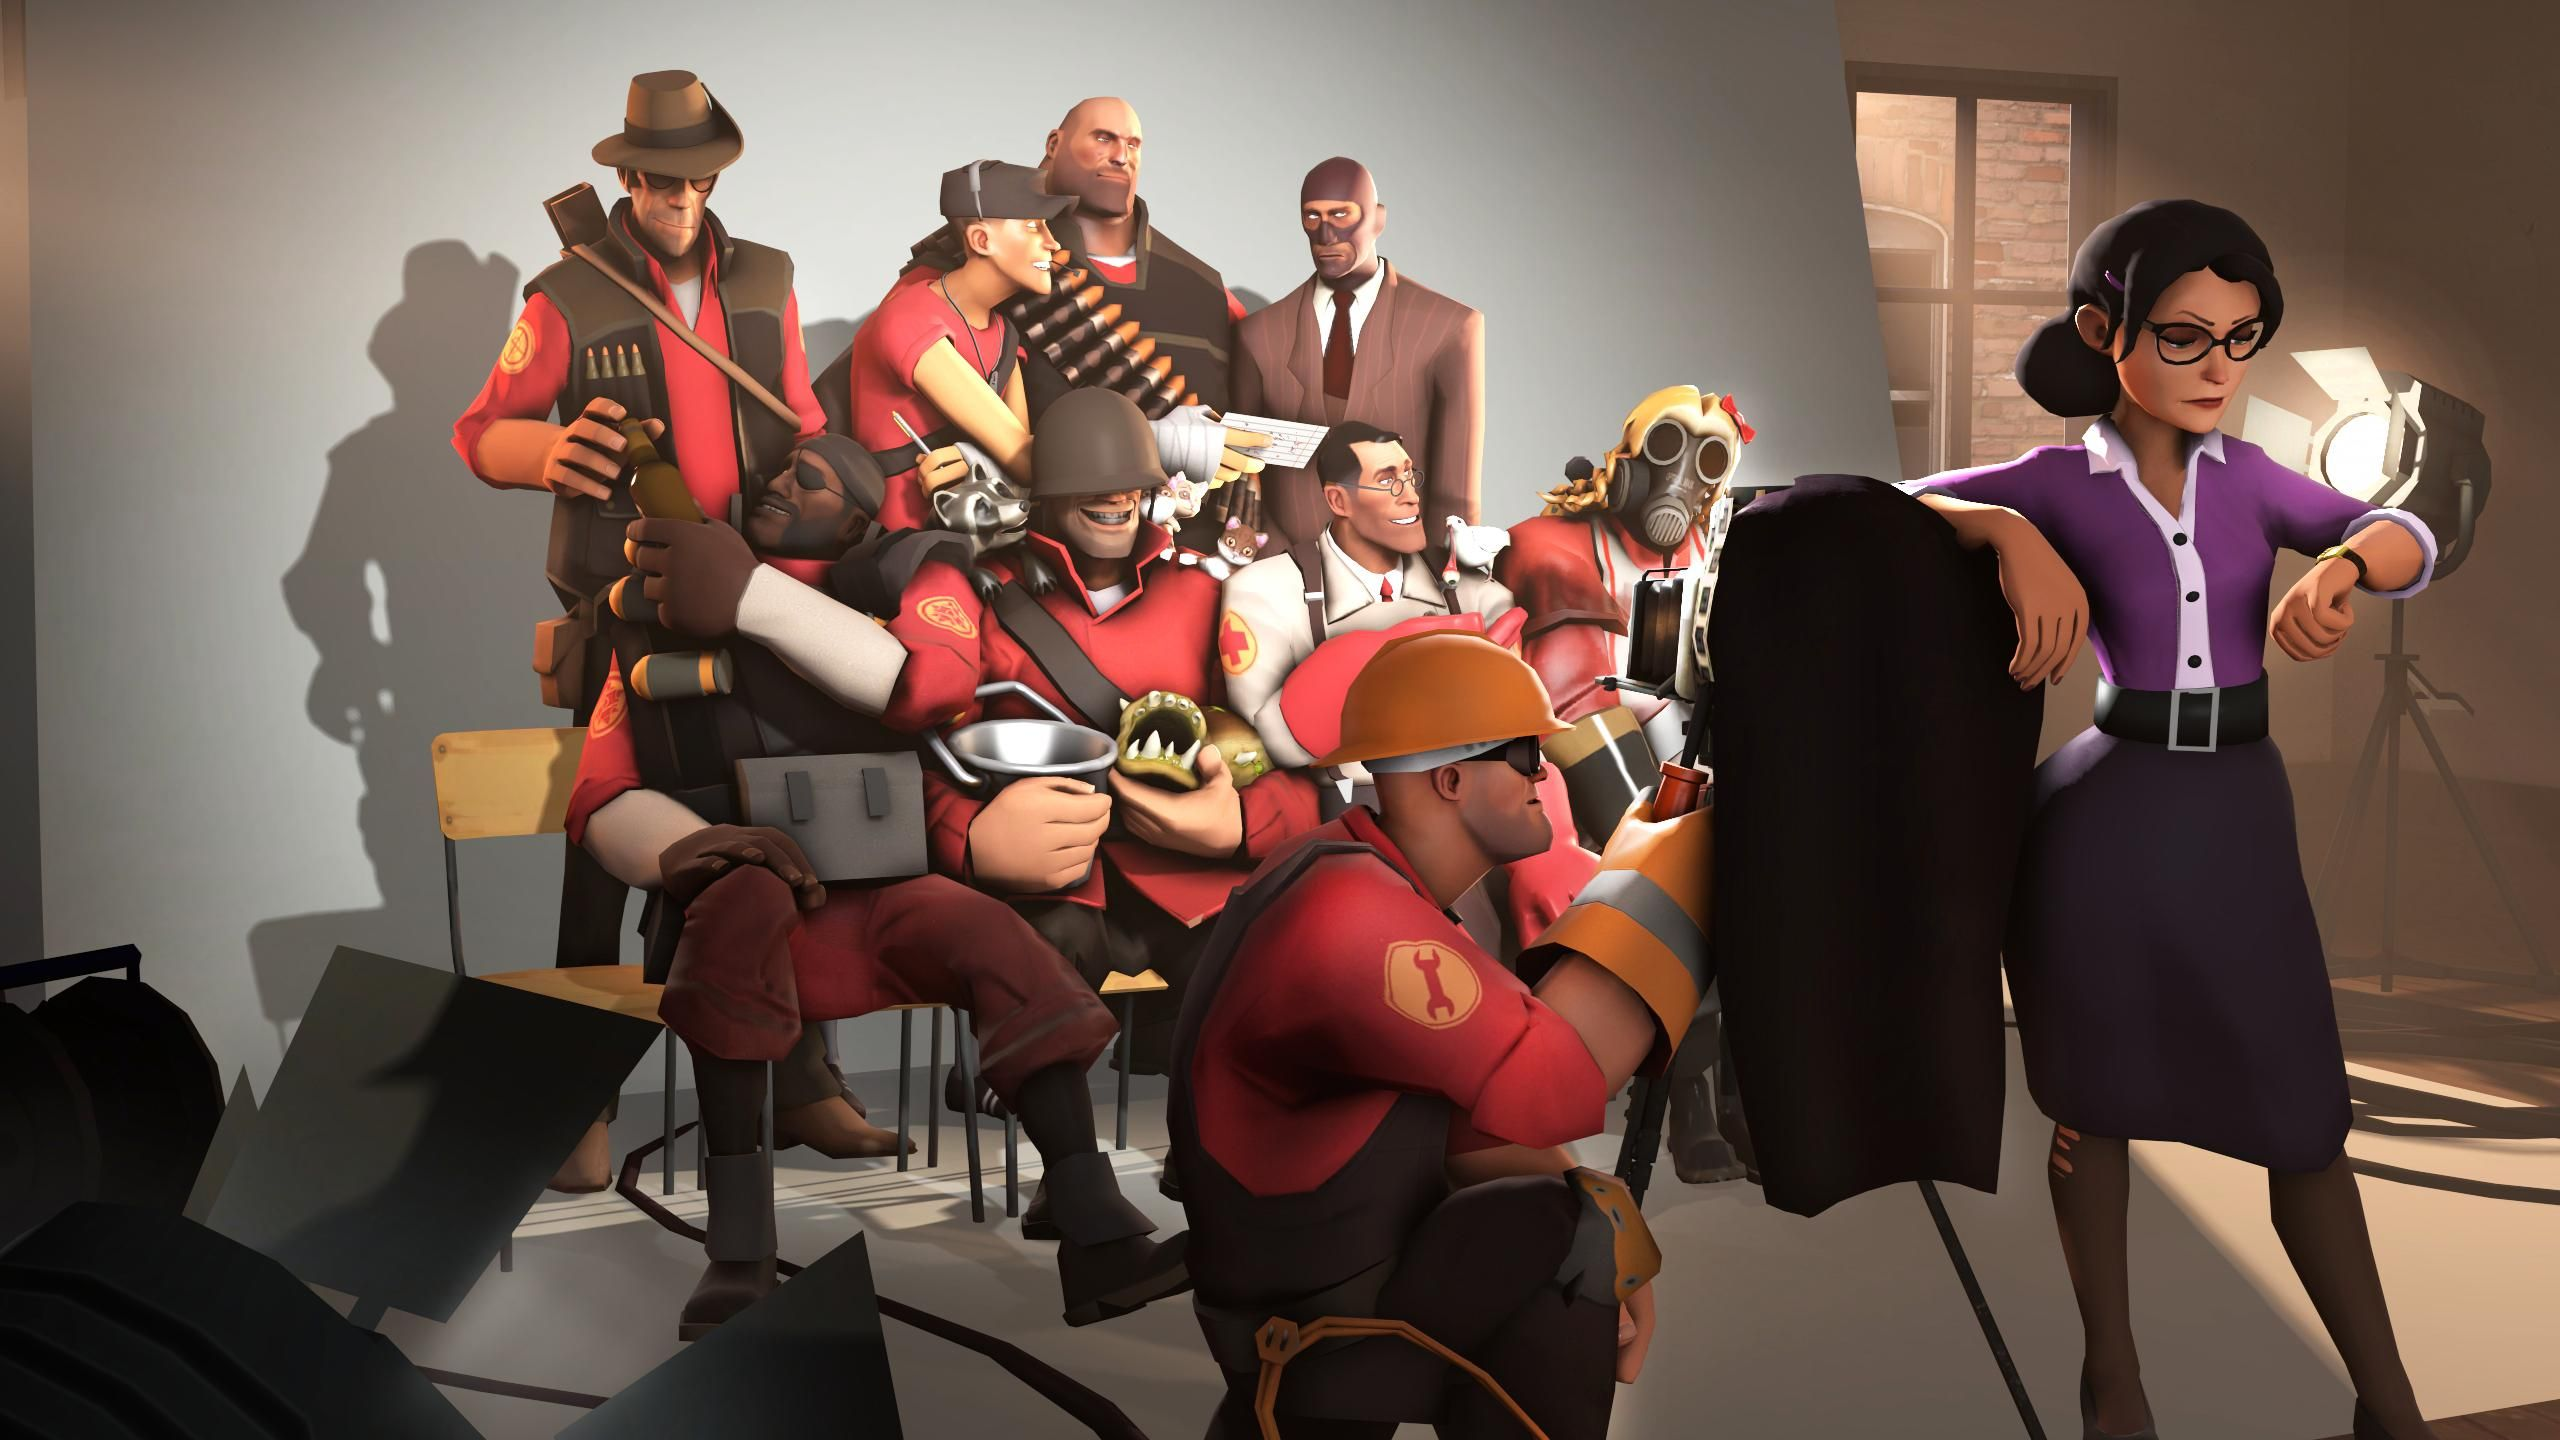 [SFM Poster] Group Photo! #games #teamfortress2 #steam #tf2 #SteamNewRelease #gaming #Valve ...